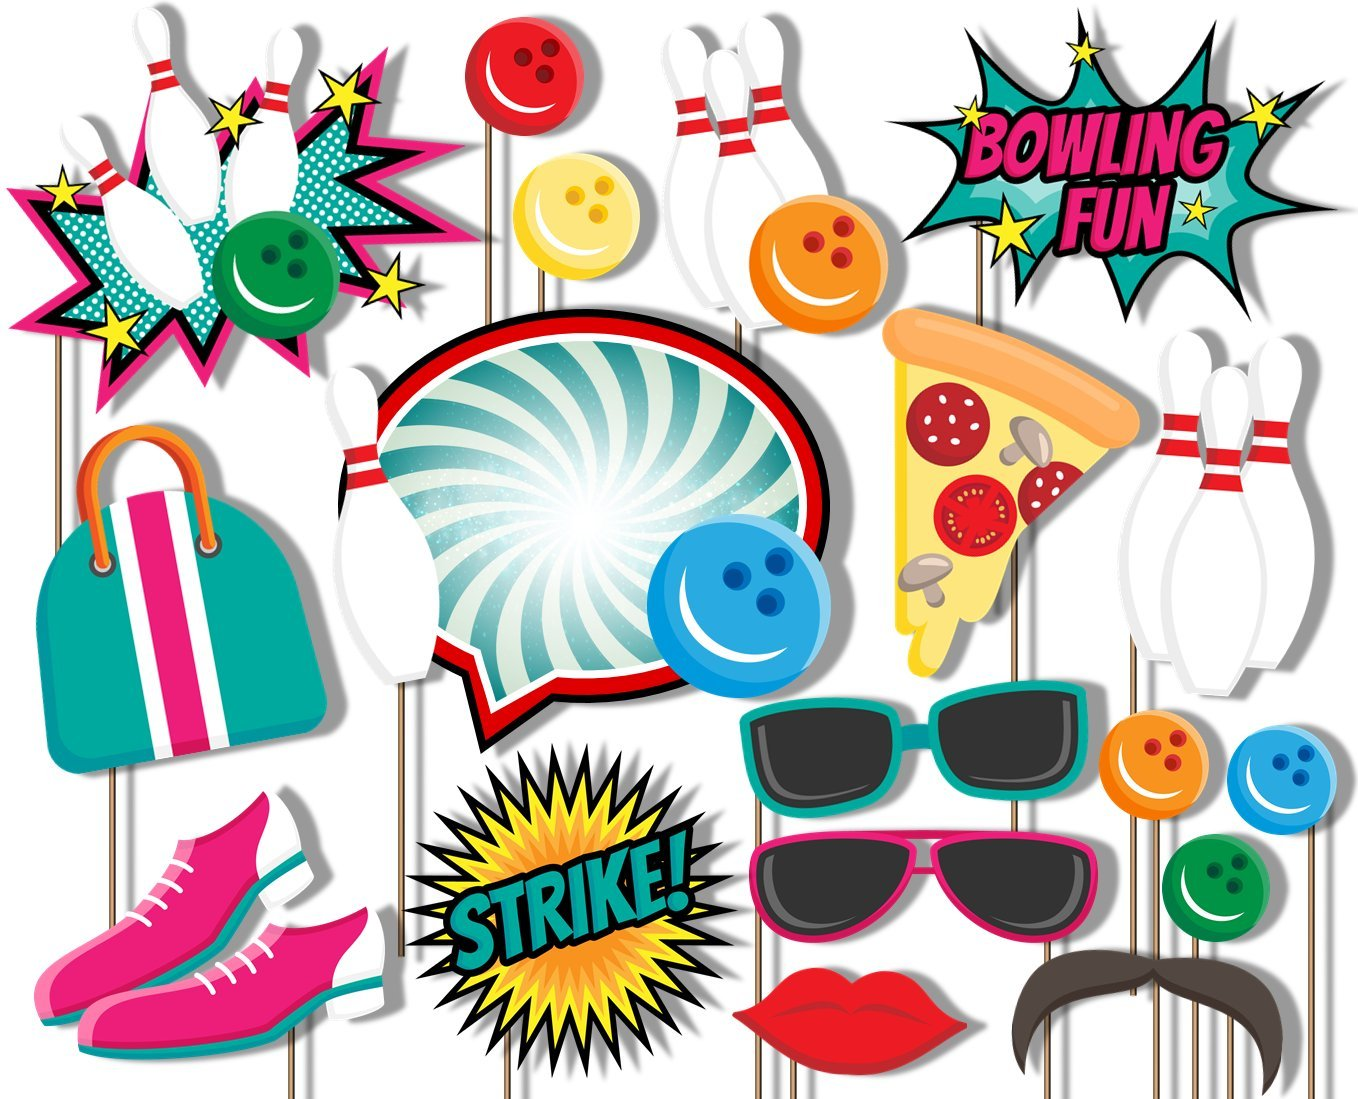 Bowling Fun Photo Booth Props Kit - 20 Pack Party Camera Props Fully Assembled by Birthday Galore